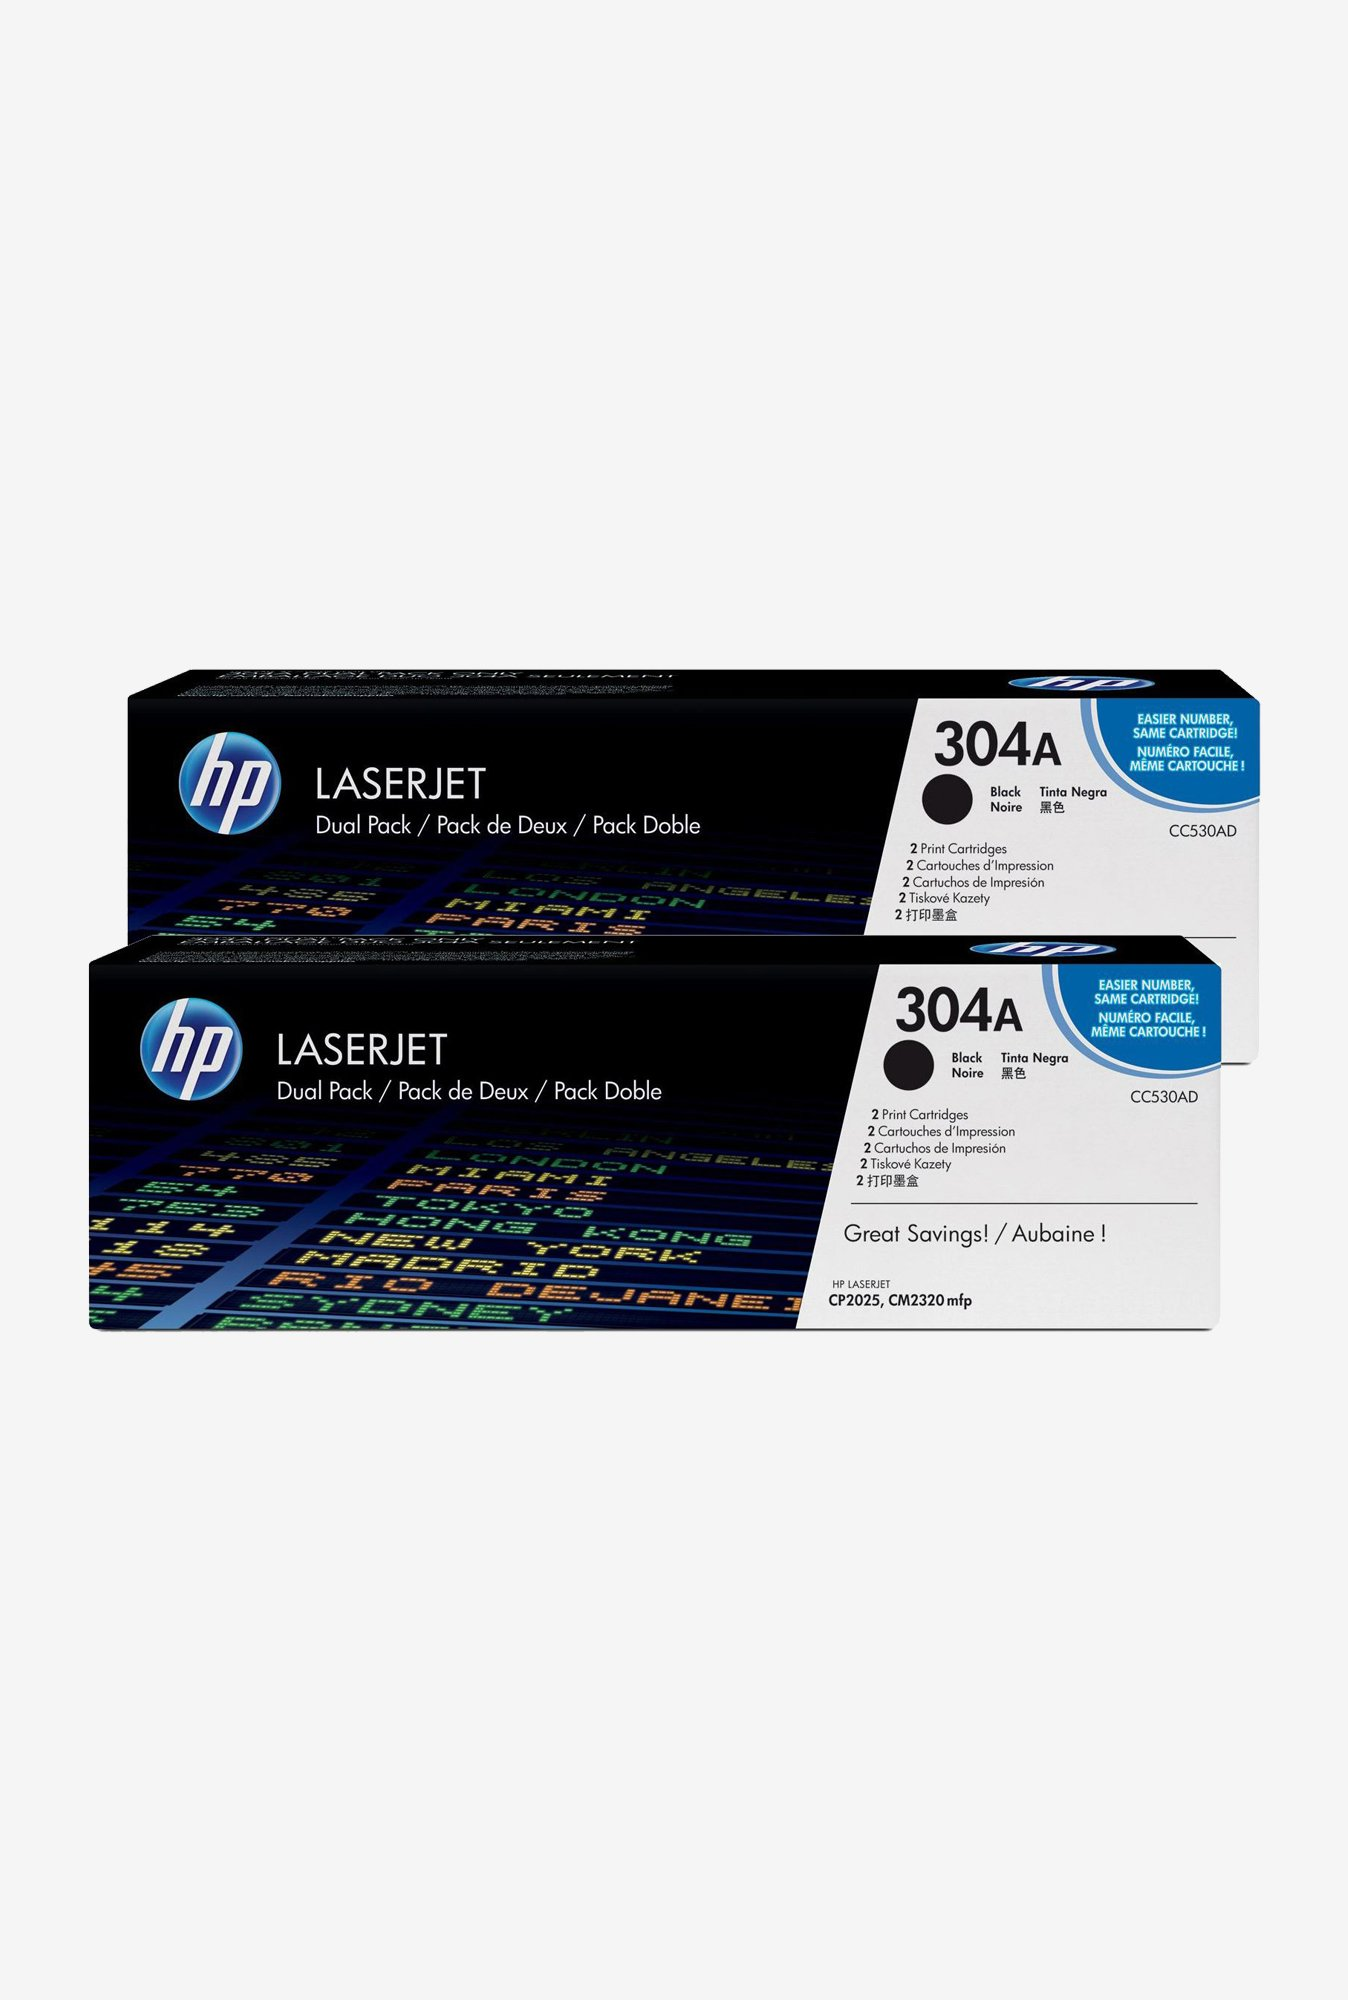 HP 304A 2-Pack LaserJet CC530AD Toner Cartridge Black